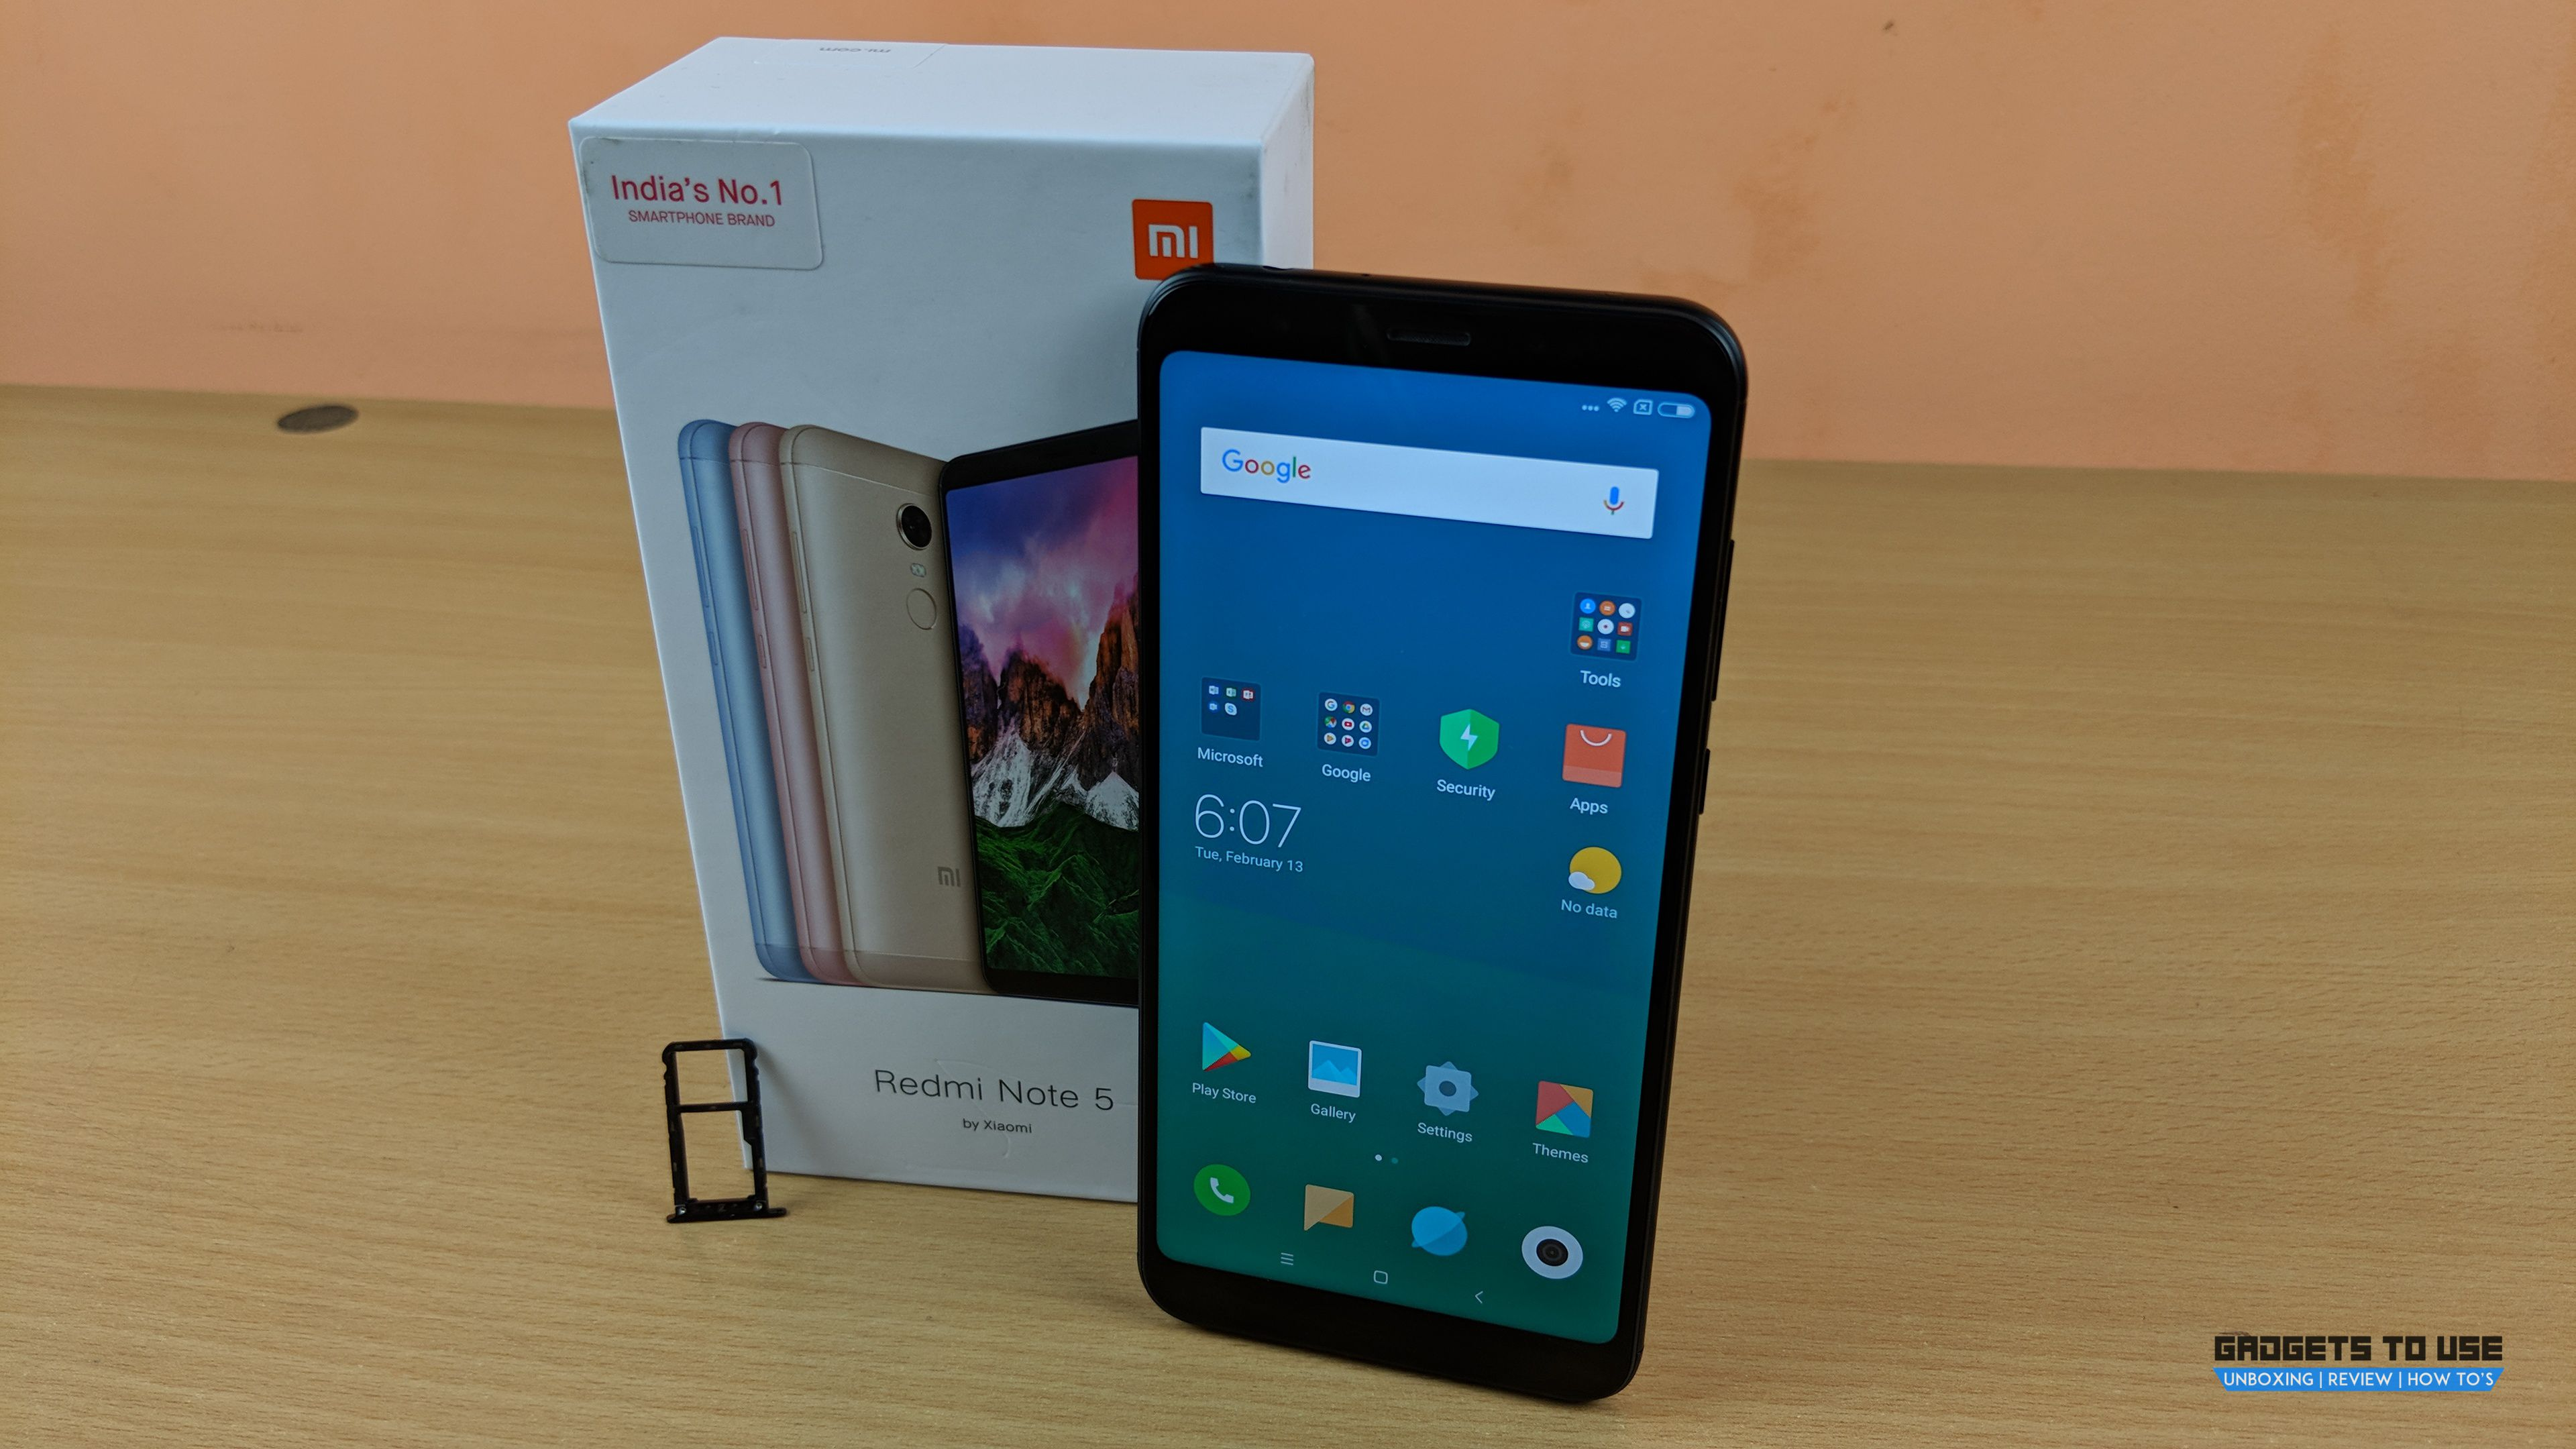 Xiaomi Redmi Note 5 Faq Pros Cons User Queries And Answers Plus Ram 4gb Internal 64gb Snapdragon Black